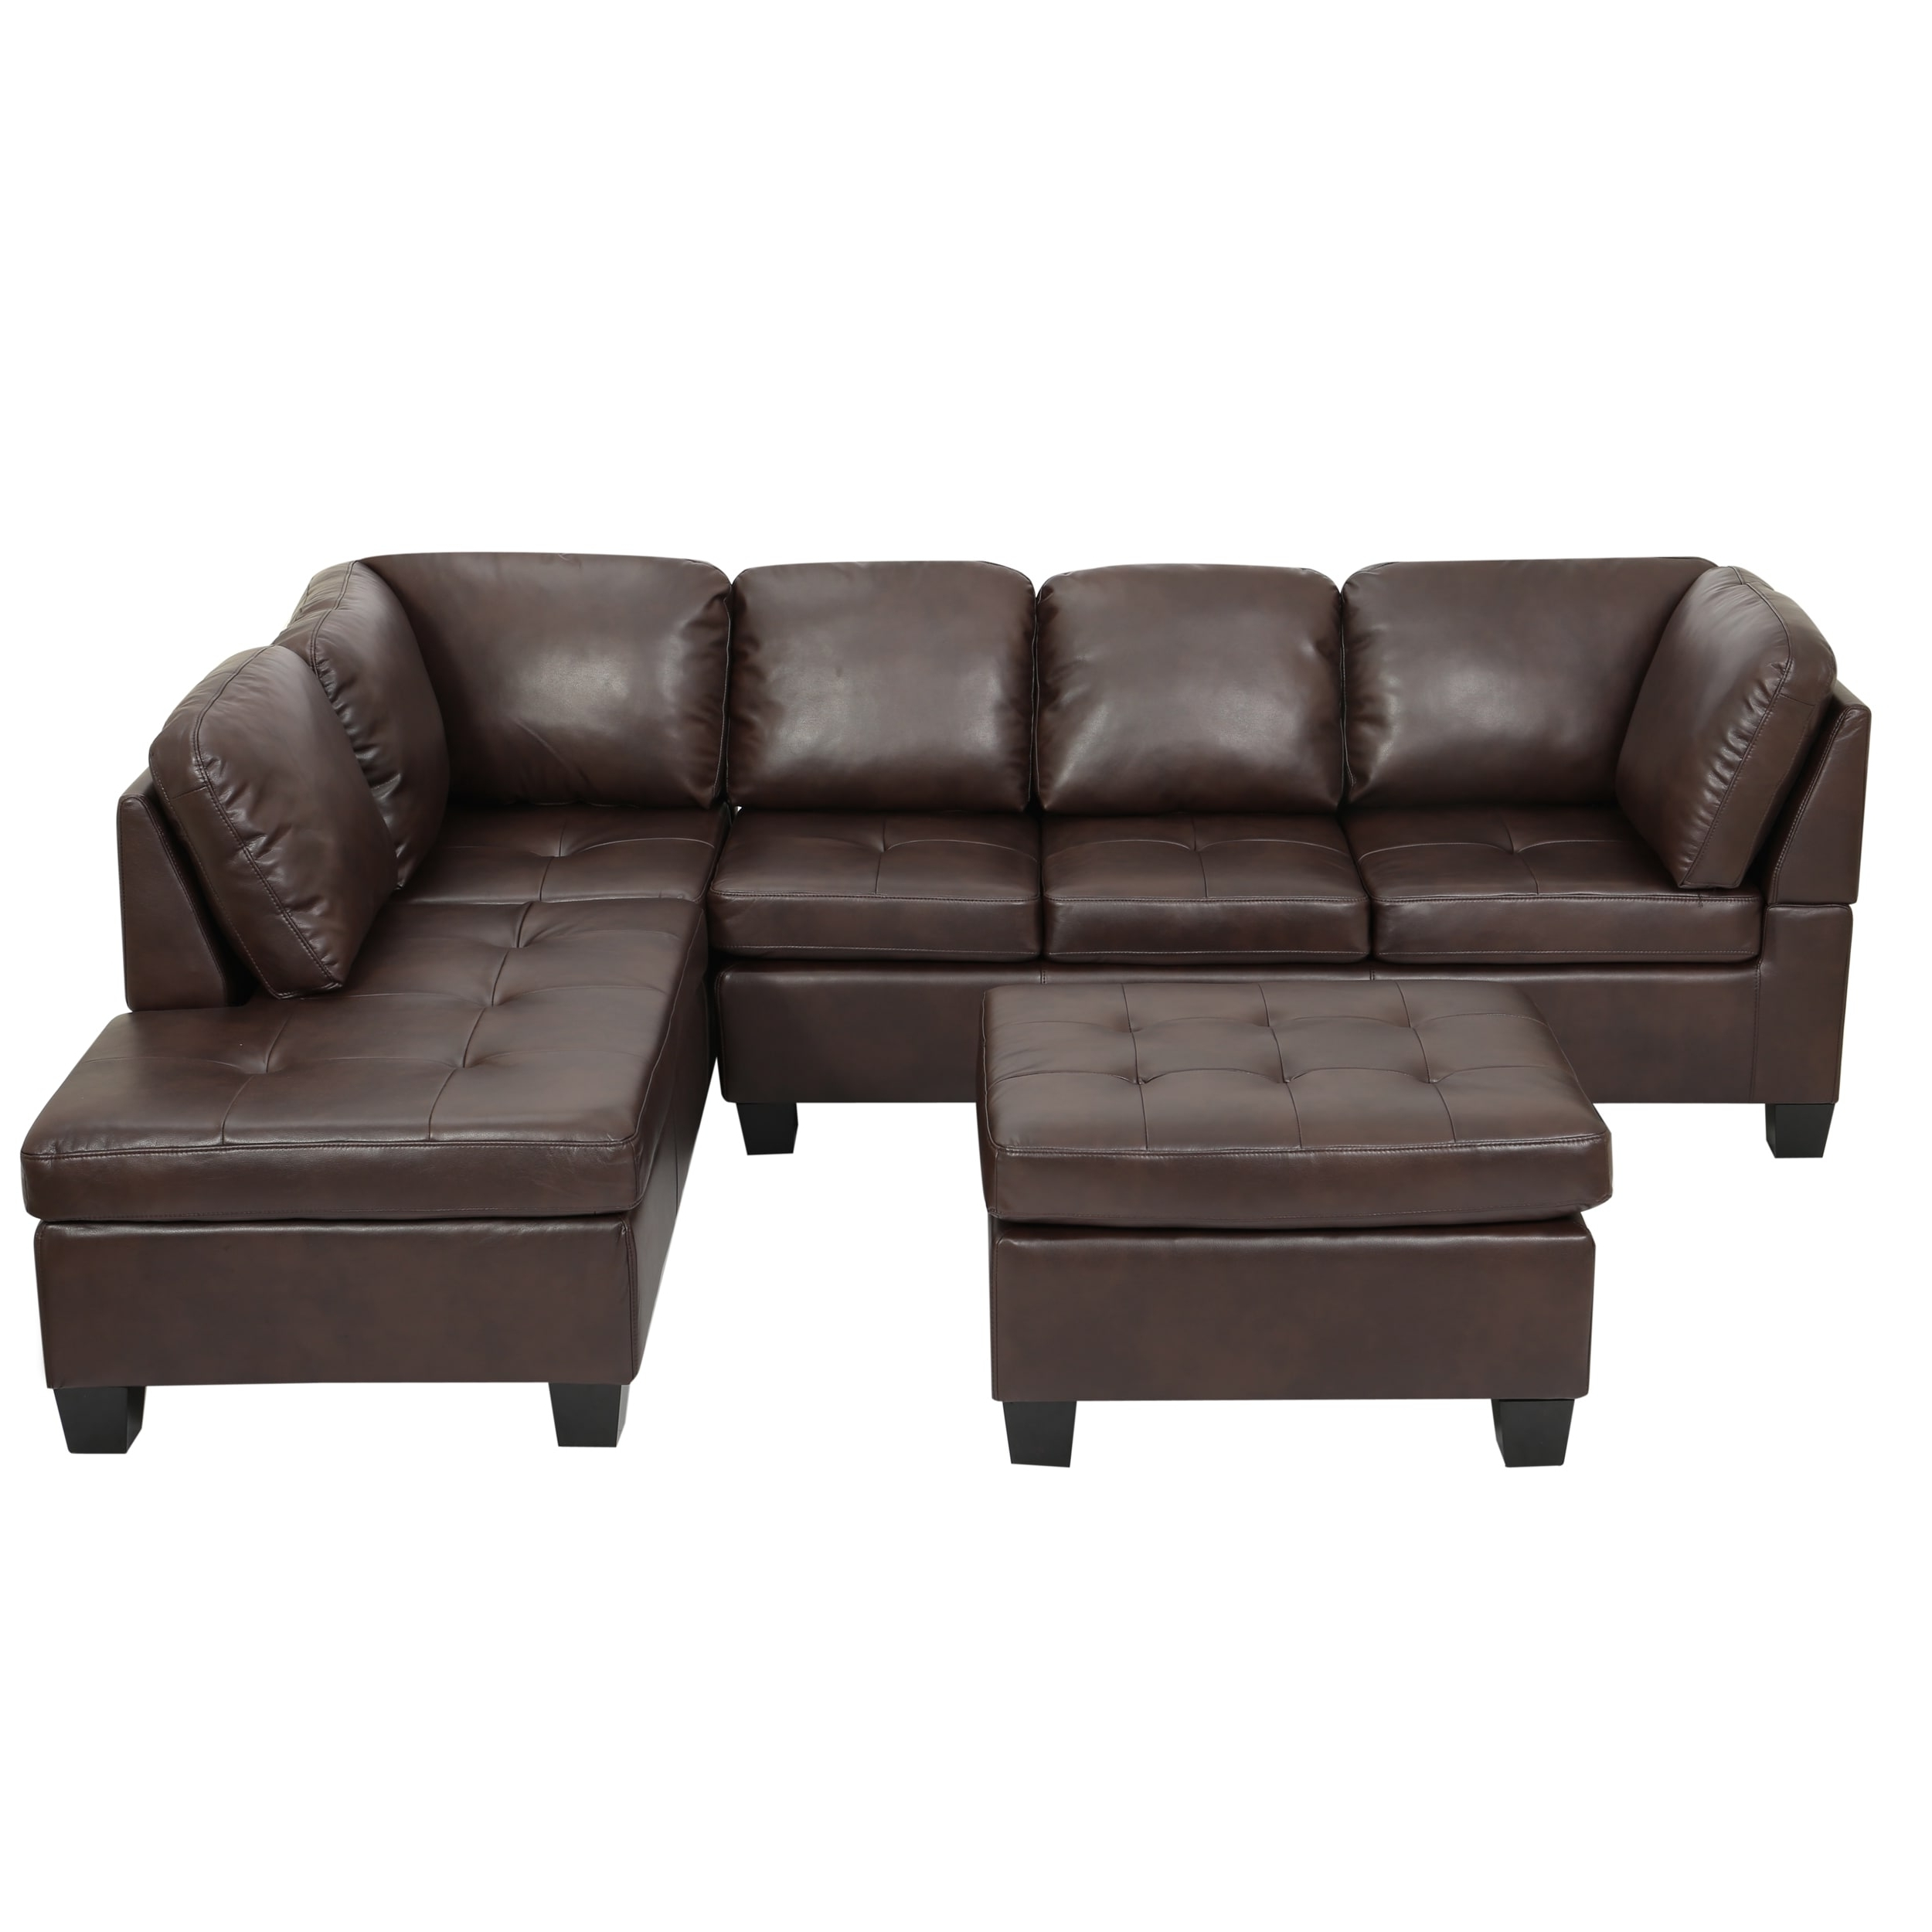 Best And Newest Canterbury 3 Piece Pu Leather Sectional Sofa Setchristopher Inside Canterbury Leather Sofas (View 5 of 20)